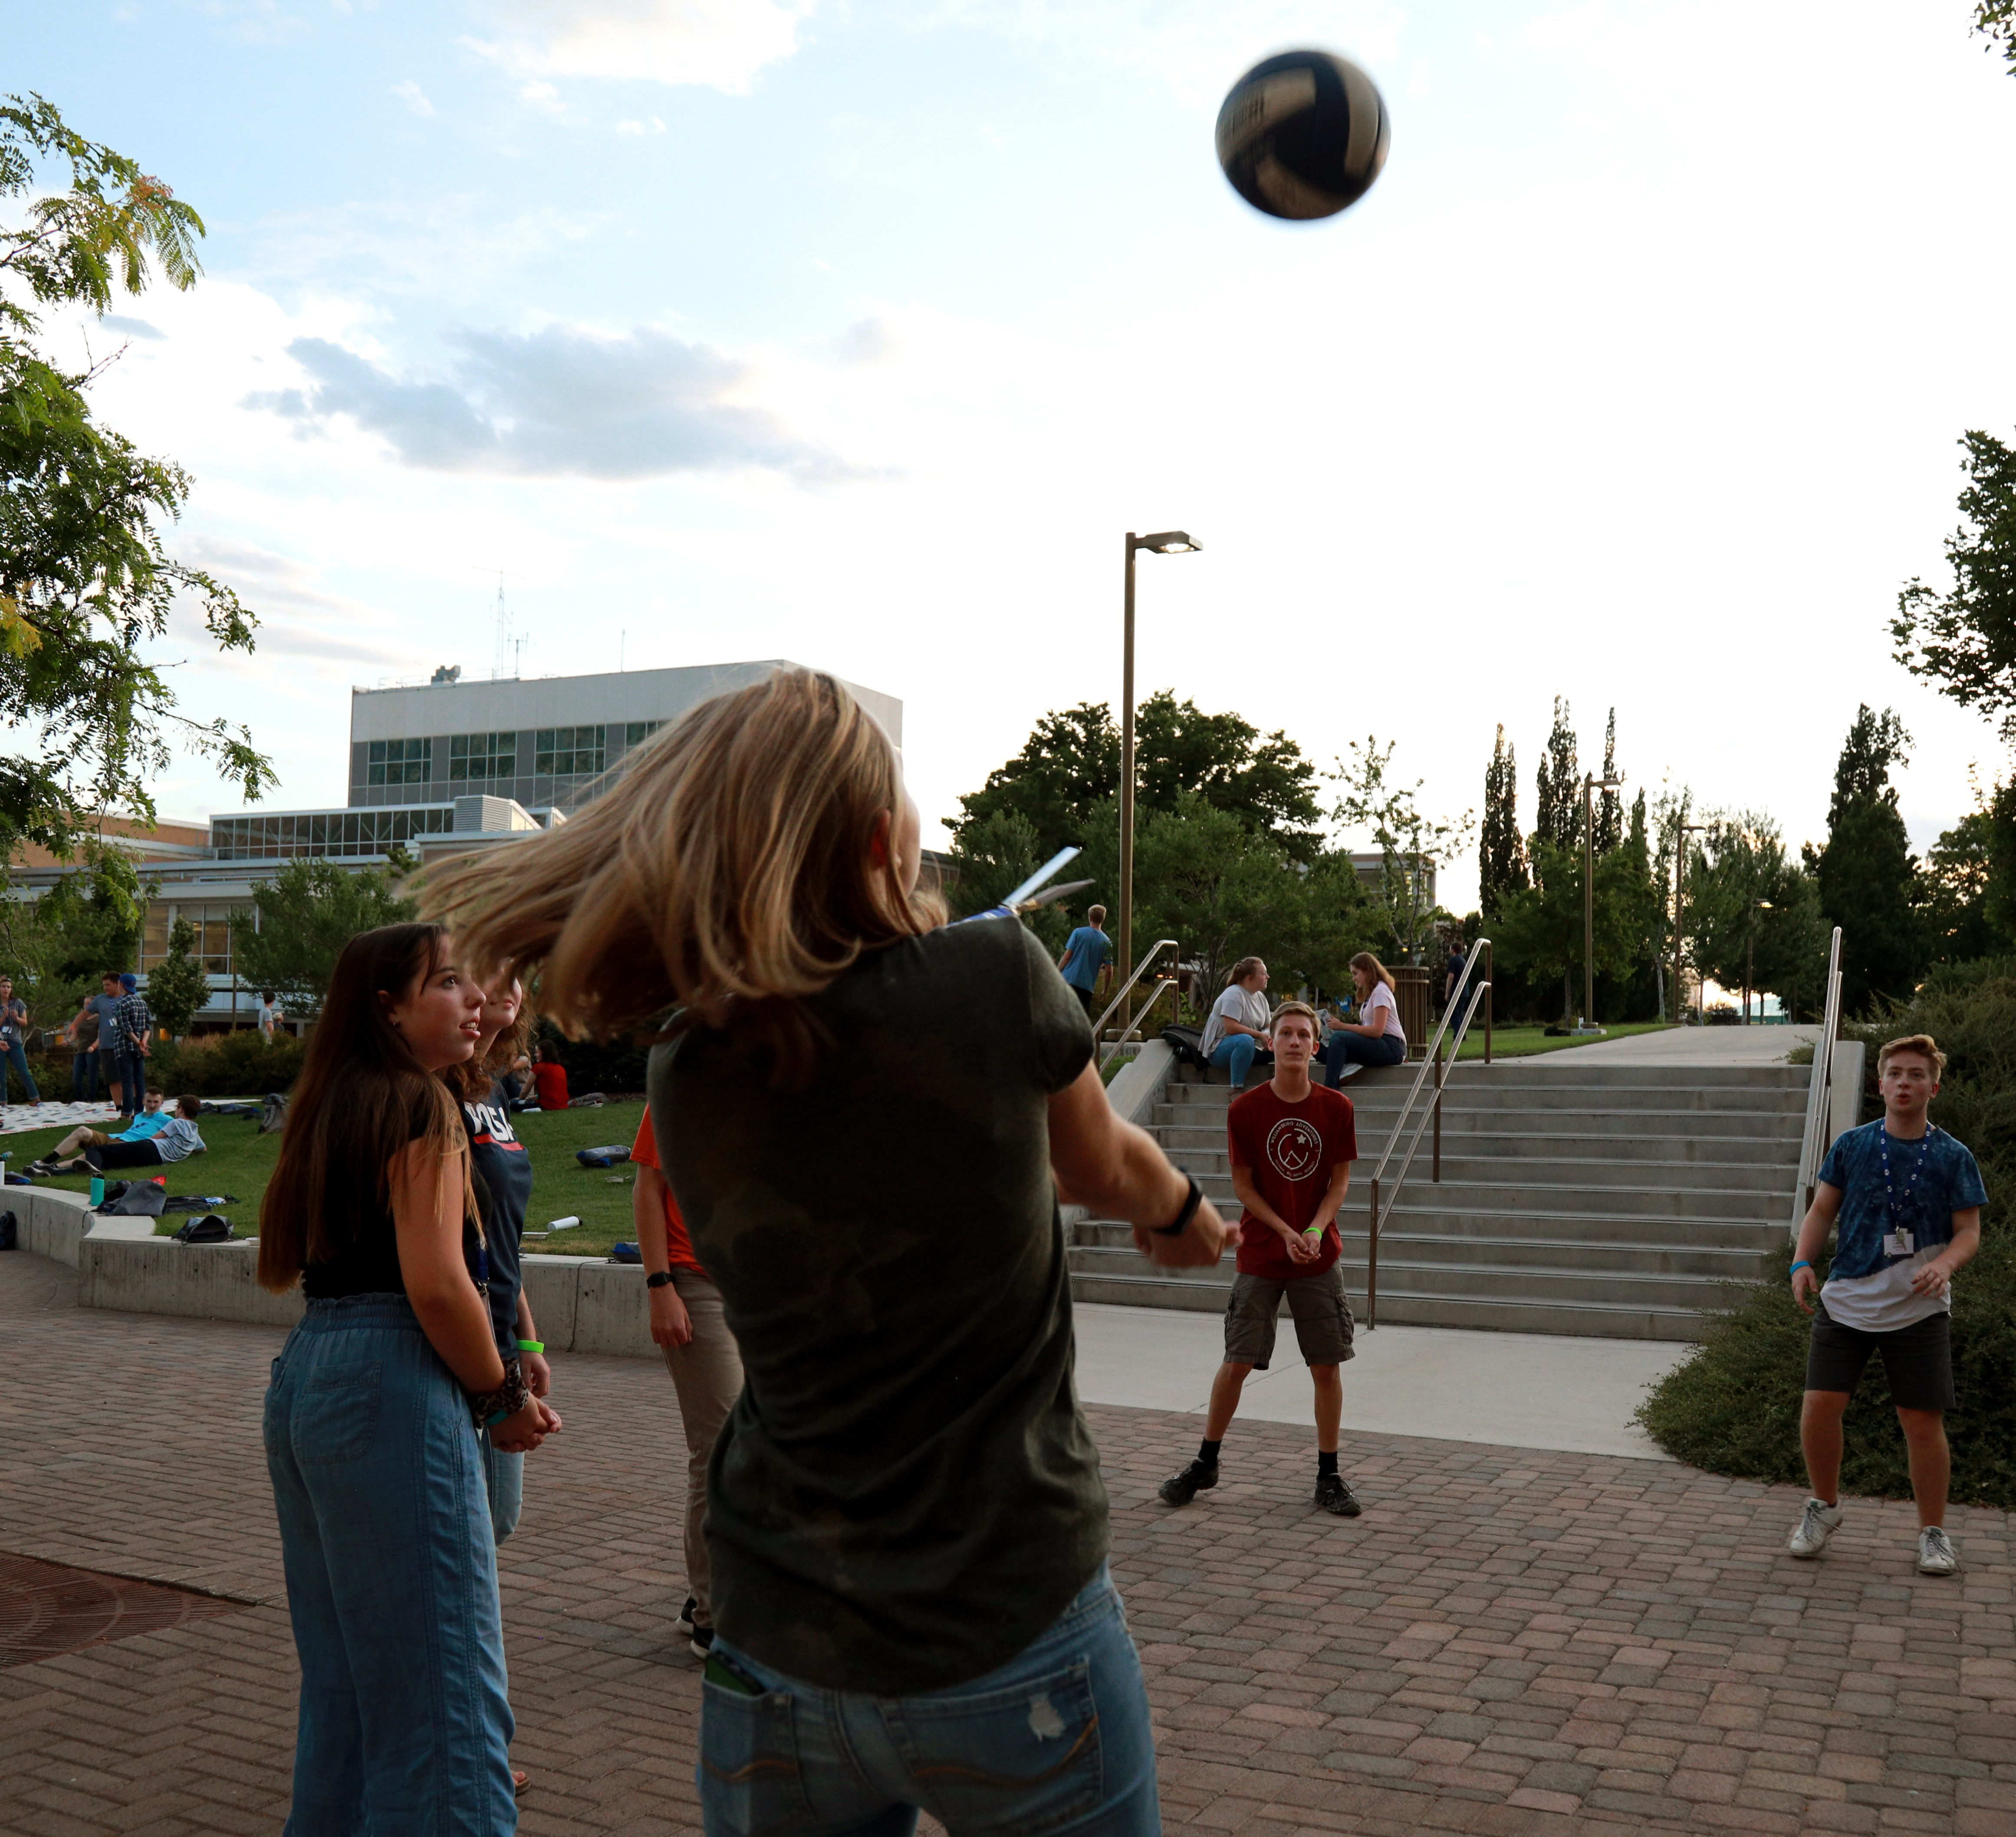 BYU Law Camp is busy with workshops, small group discussions and mock court activities -- but campers still find time to play some volleyball and have fun.